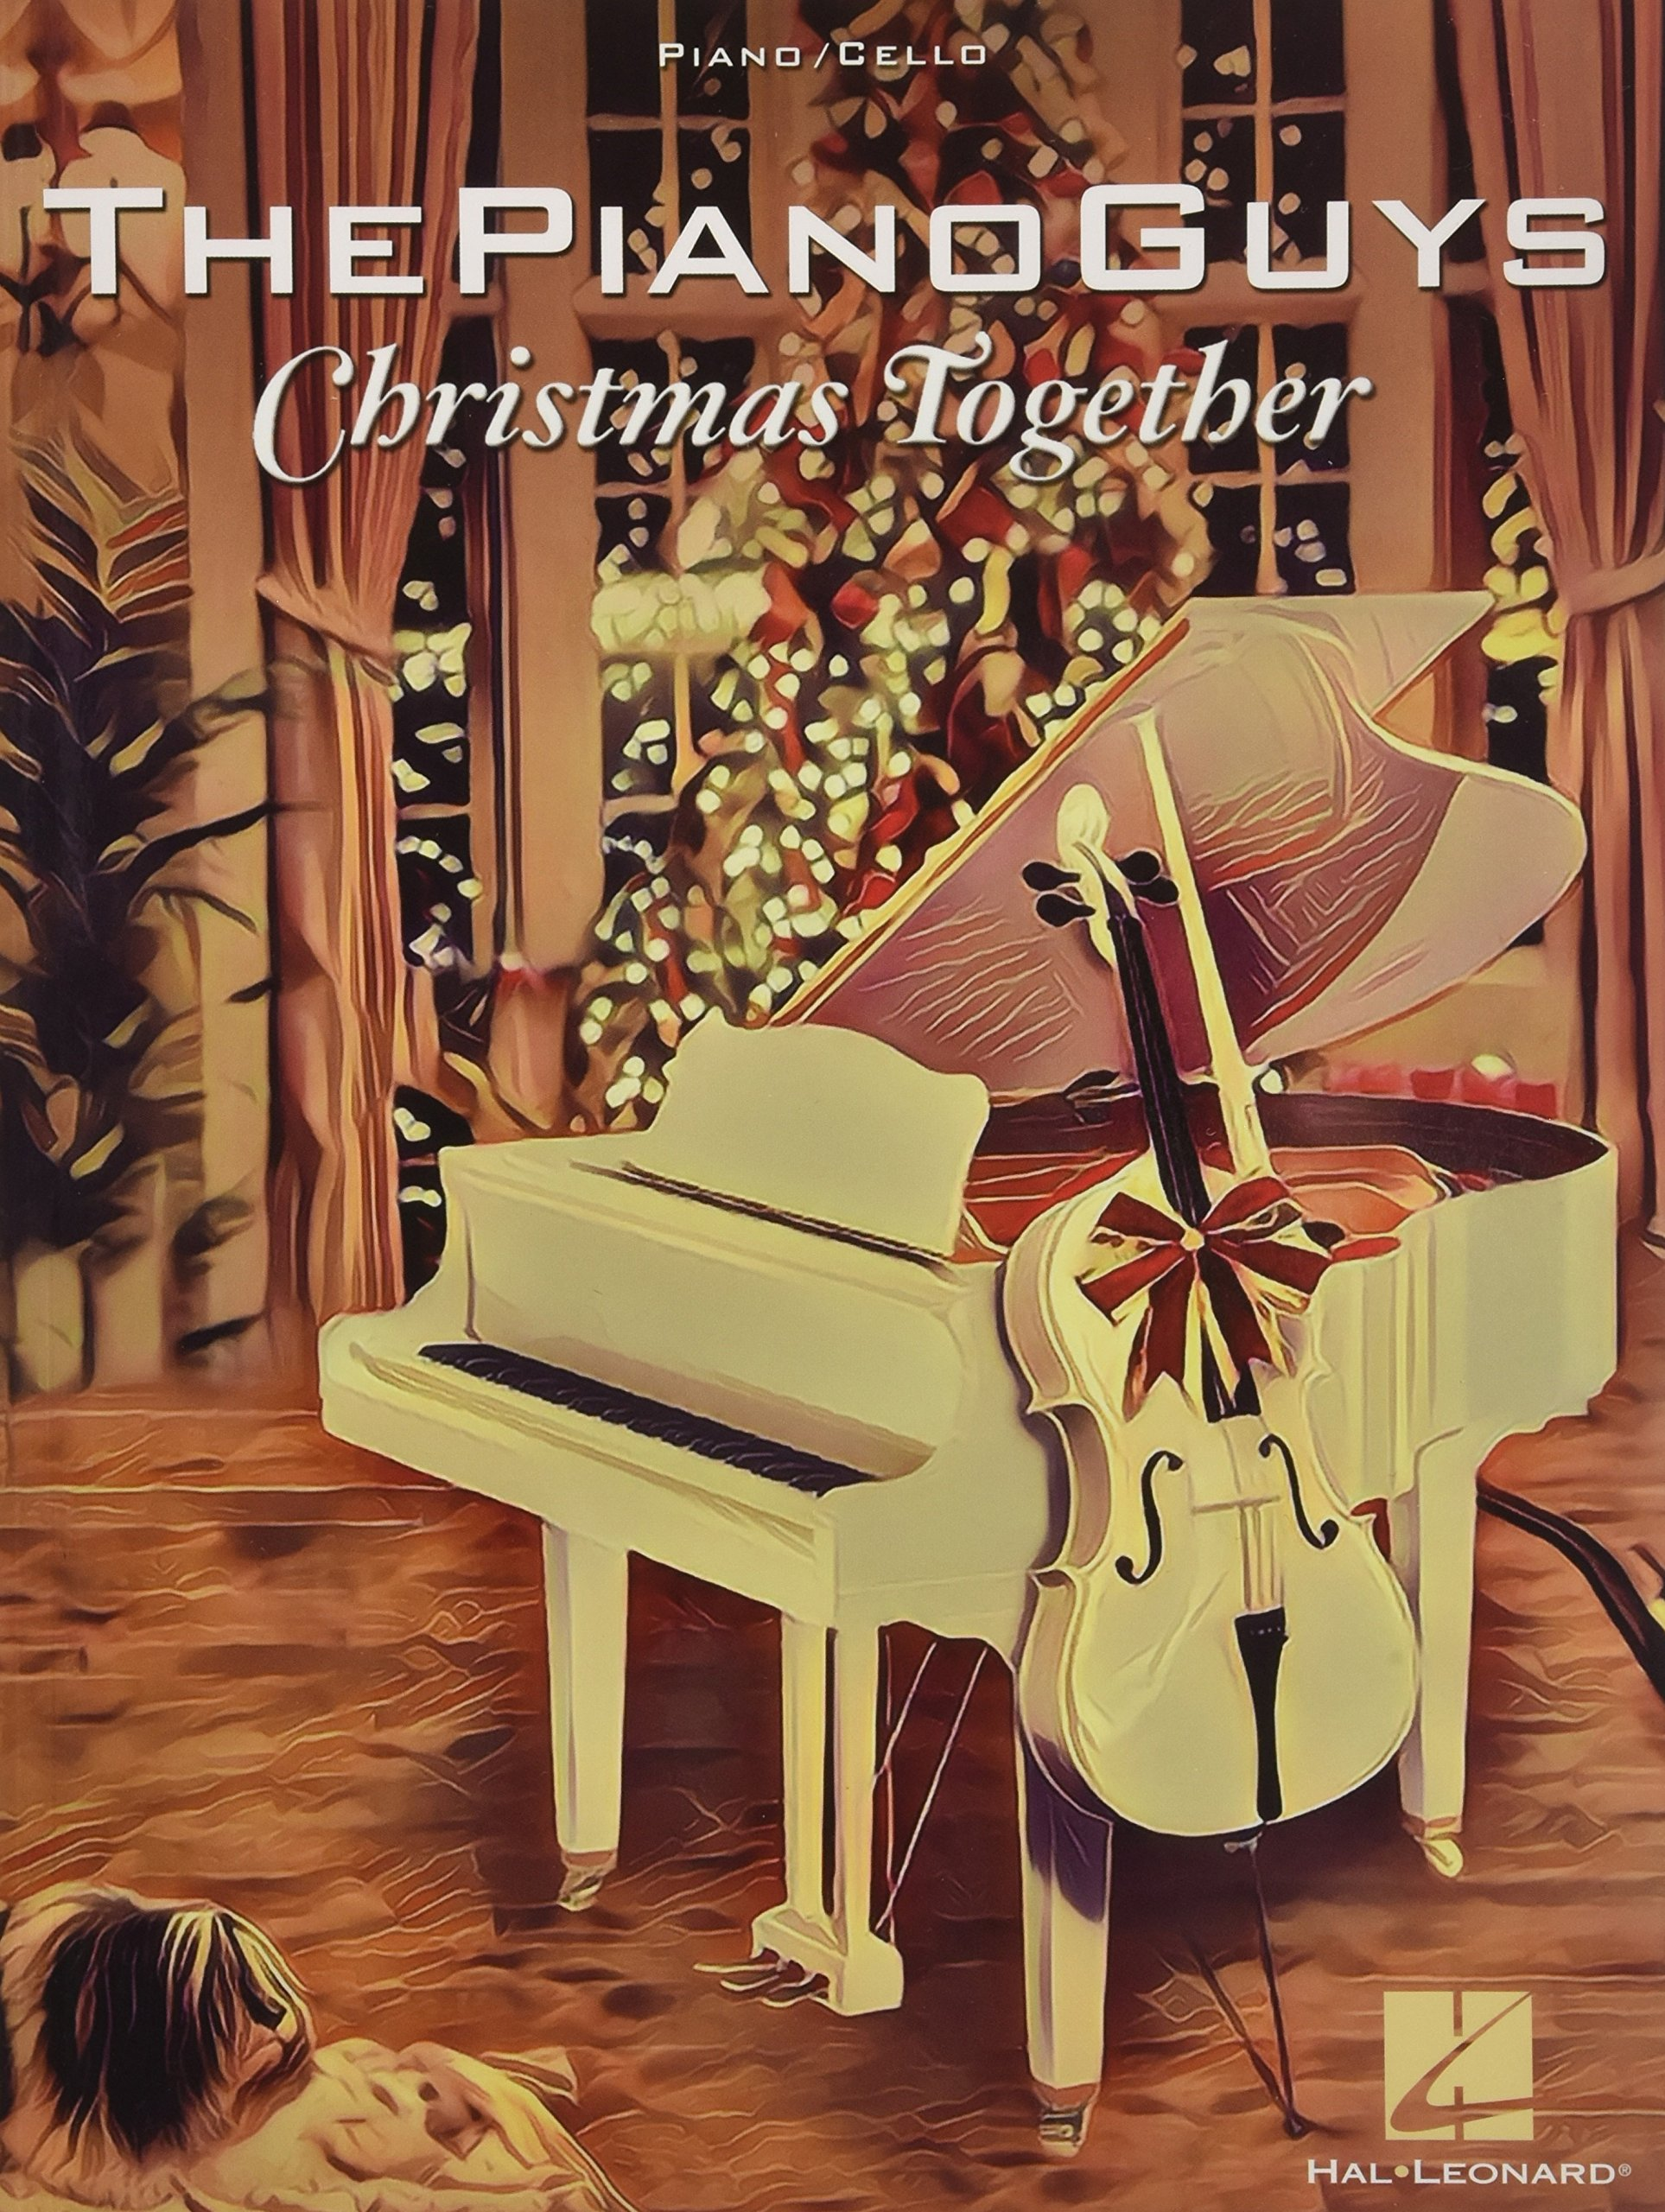 amazoncom the piano guys christmas together piano solo with optional cello 0888680719814 the piano guys books